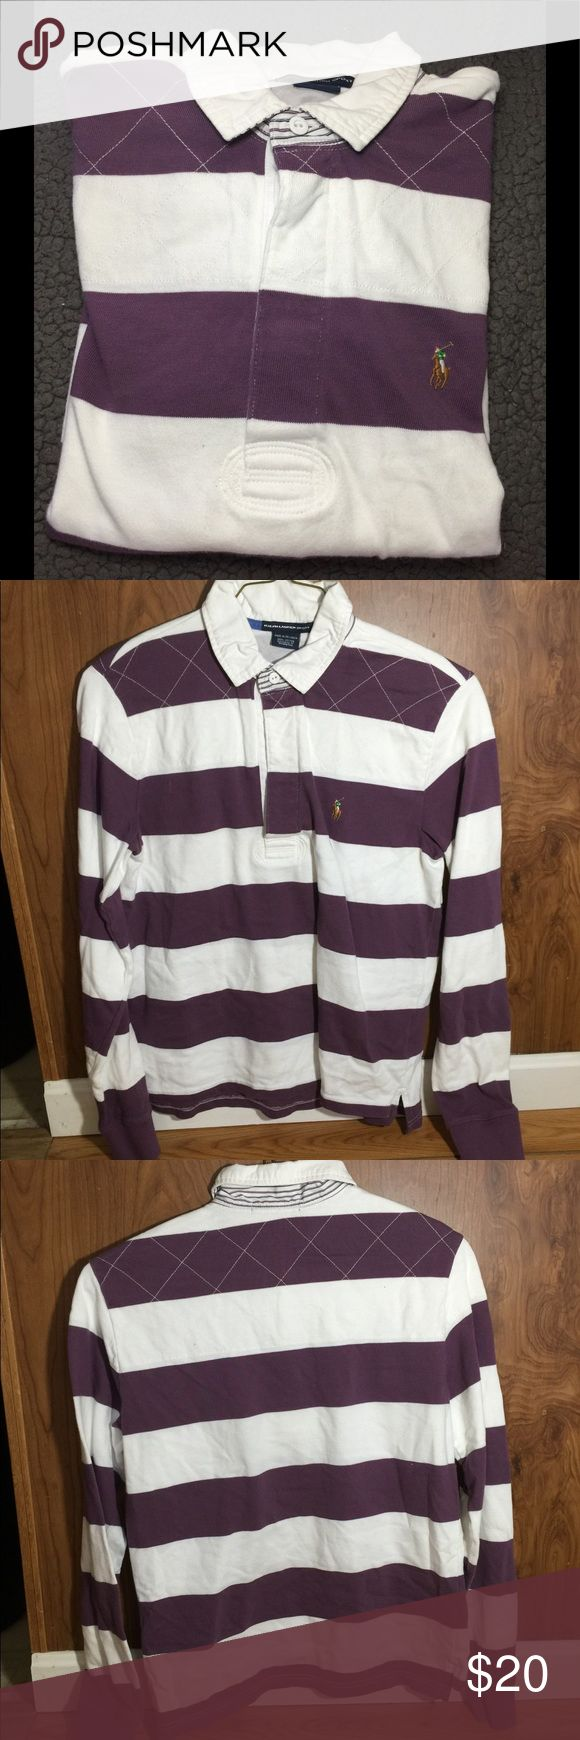 Polo Ralph Lauren L/S Women's Rugby Shirt Excellent Used Condition  Polo Ralph Lauren Sport Women's long sleeve Rugby shirt  Size: XL Color: purple and white  From a smoke free and pet free home No holes or stains Ralph Lauren Tops Tees - Long Sleeve